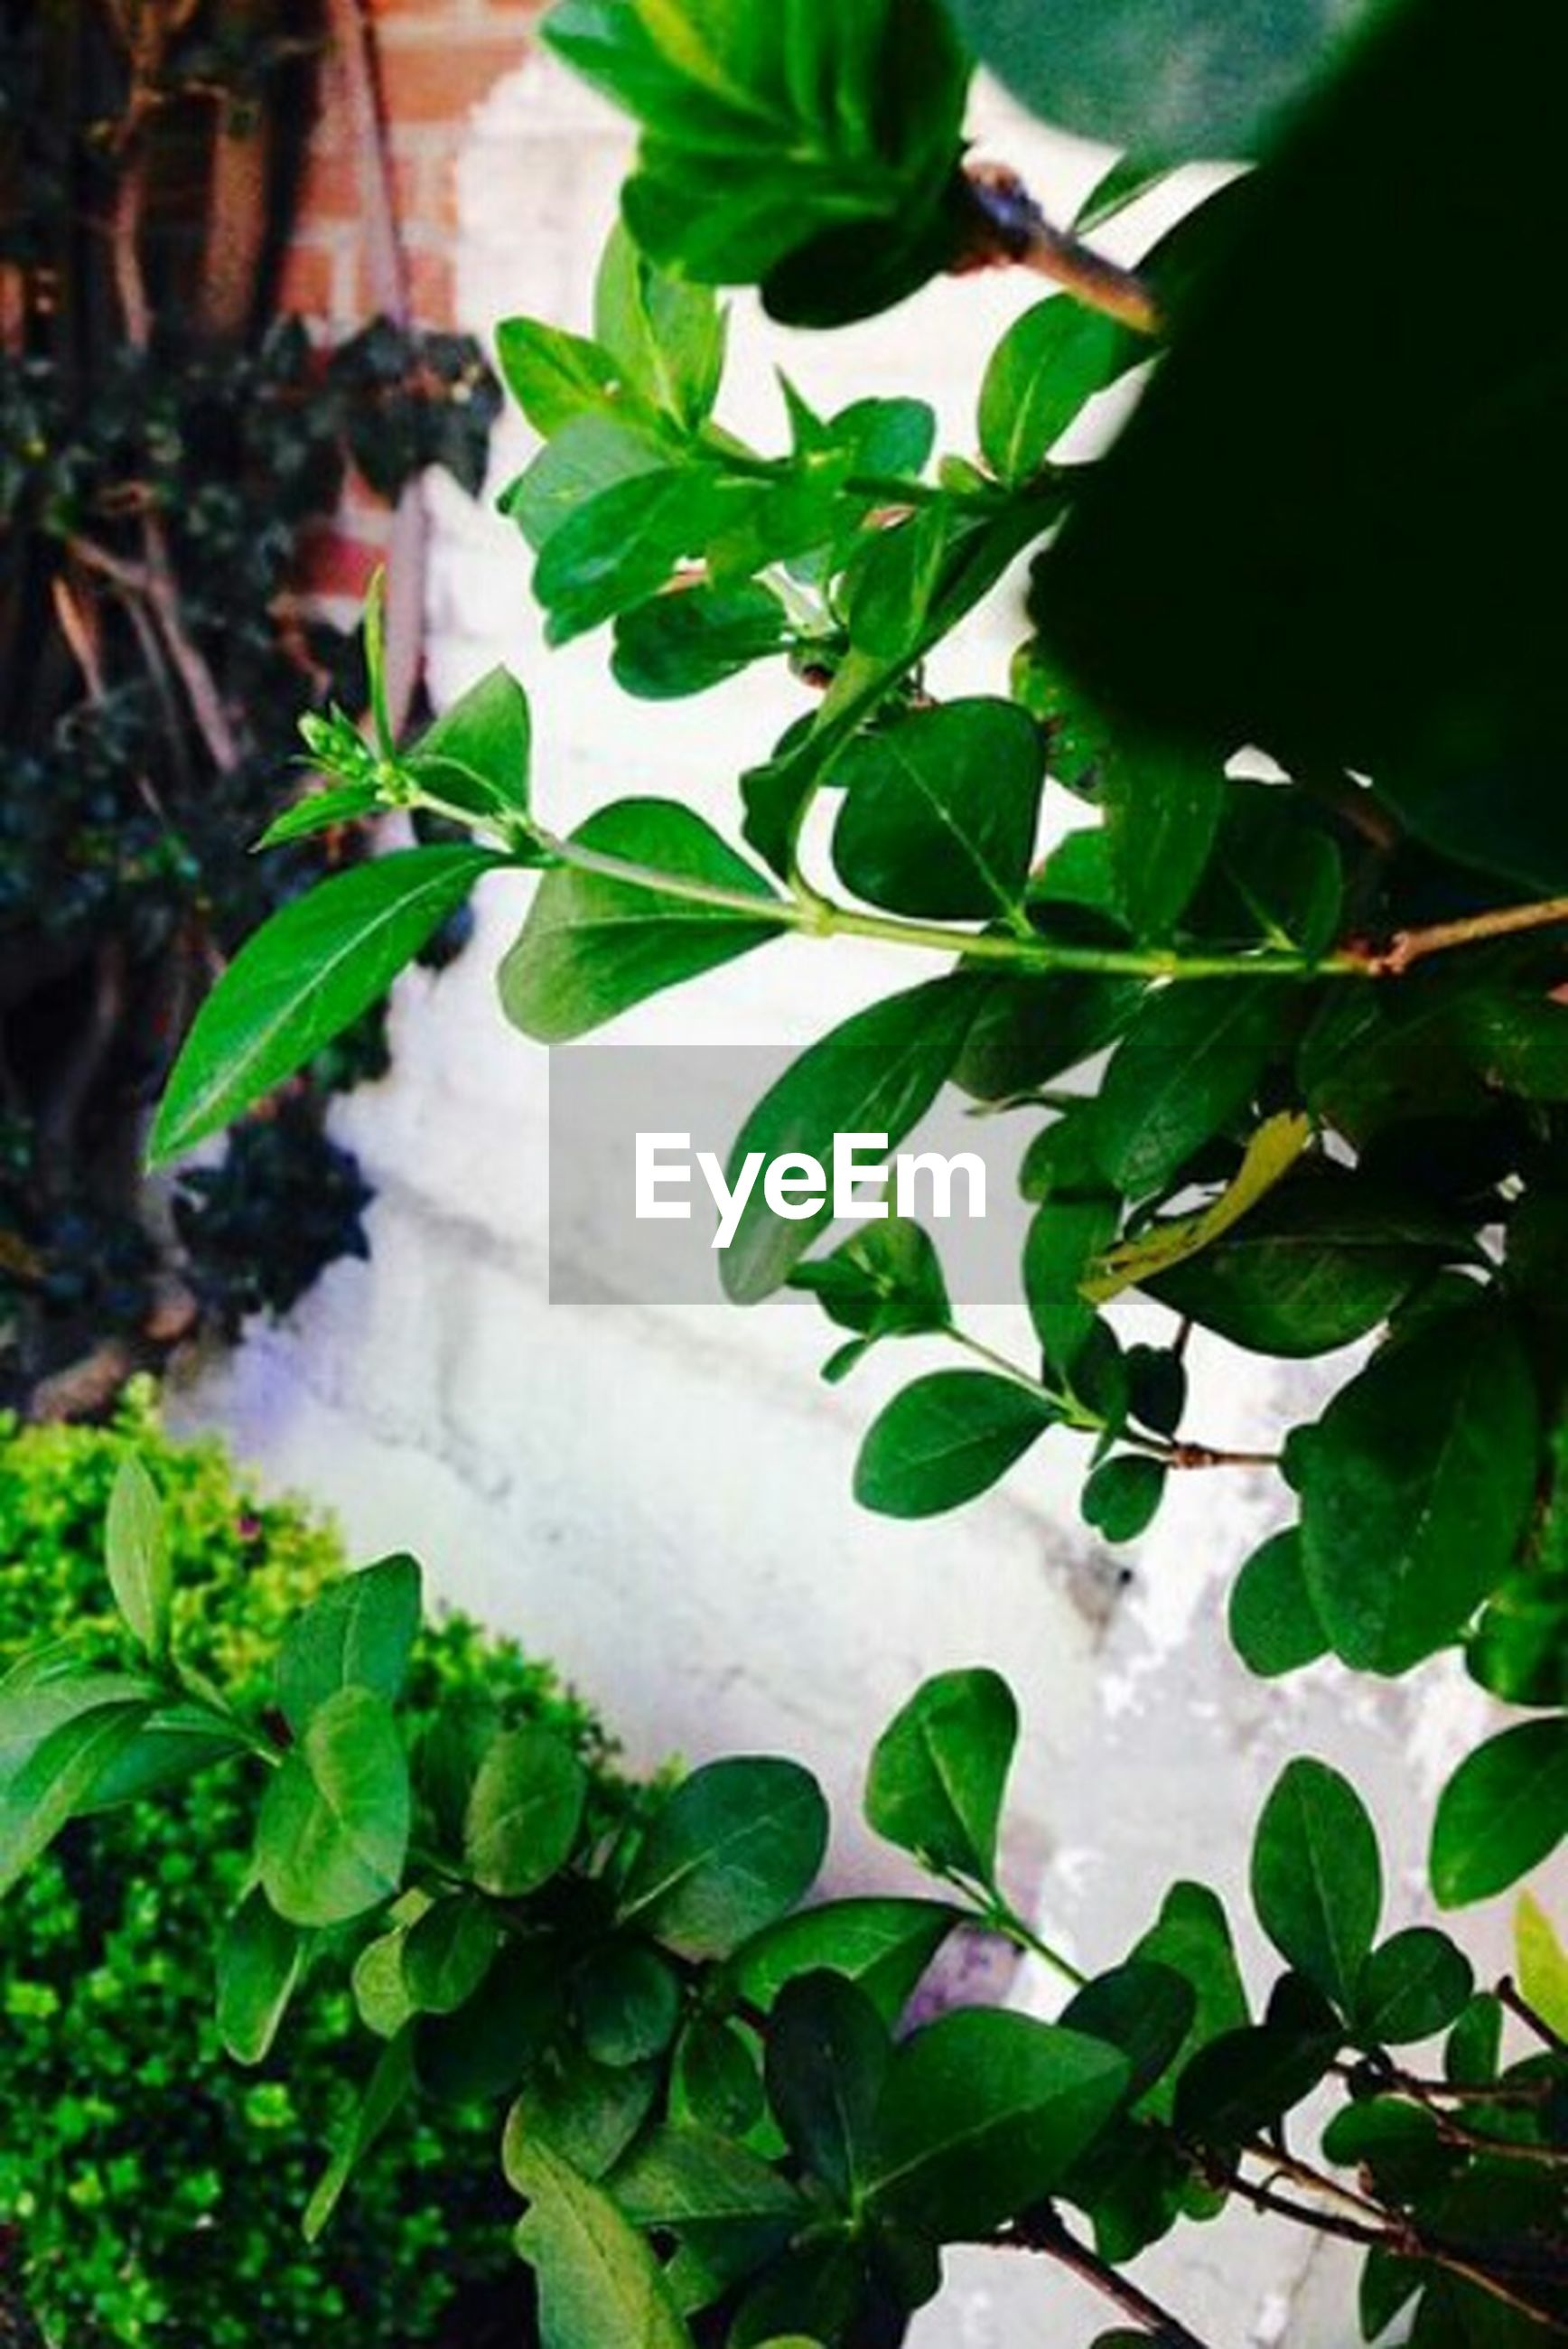 leaf, plant, green color, growth, day, high angle view, nature, outdoors, ivy, no people, close-up, freshness, beauty in nature, tea crop